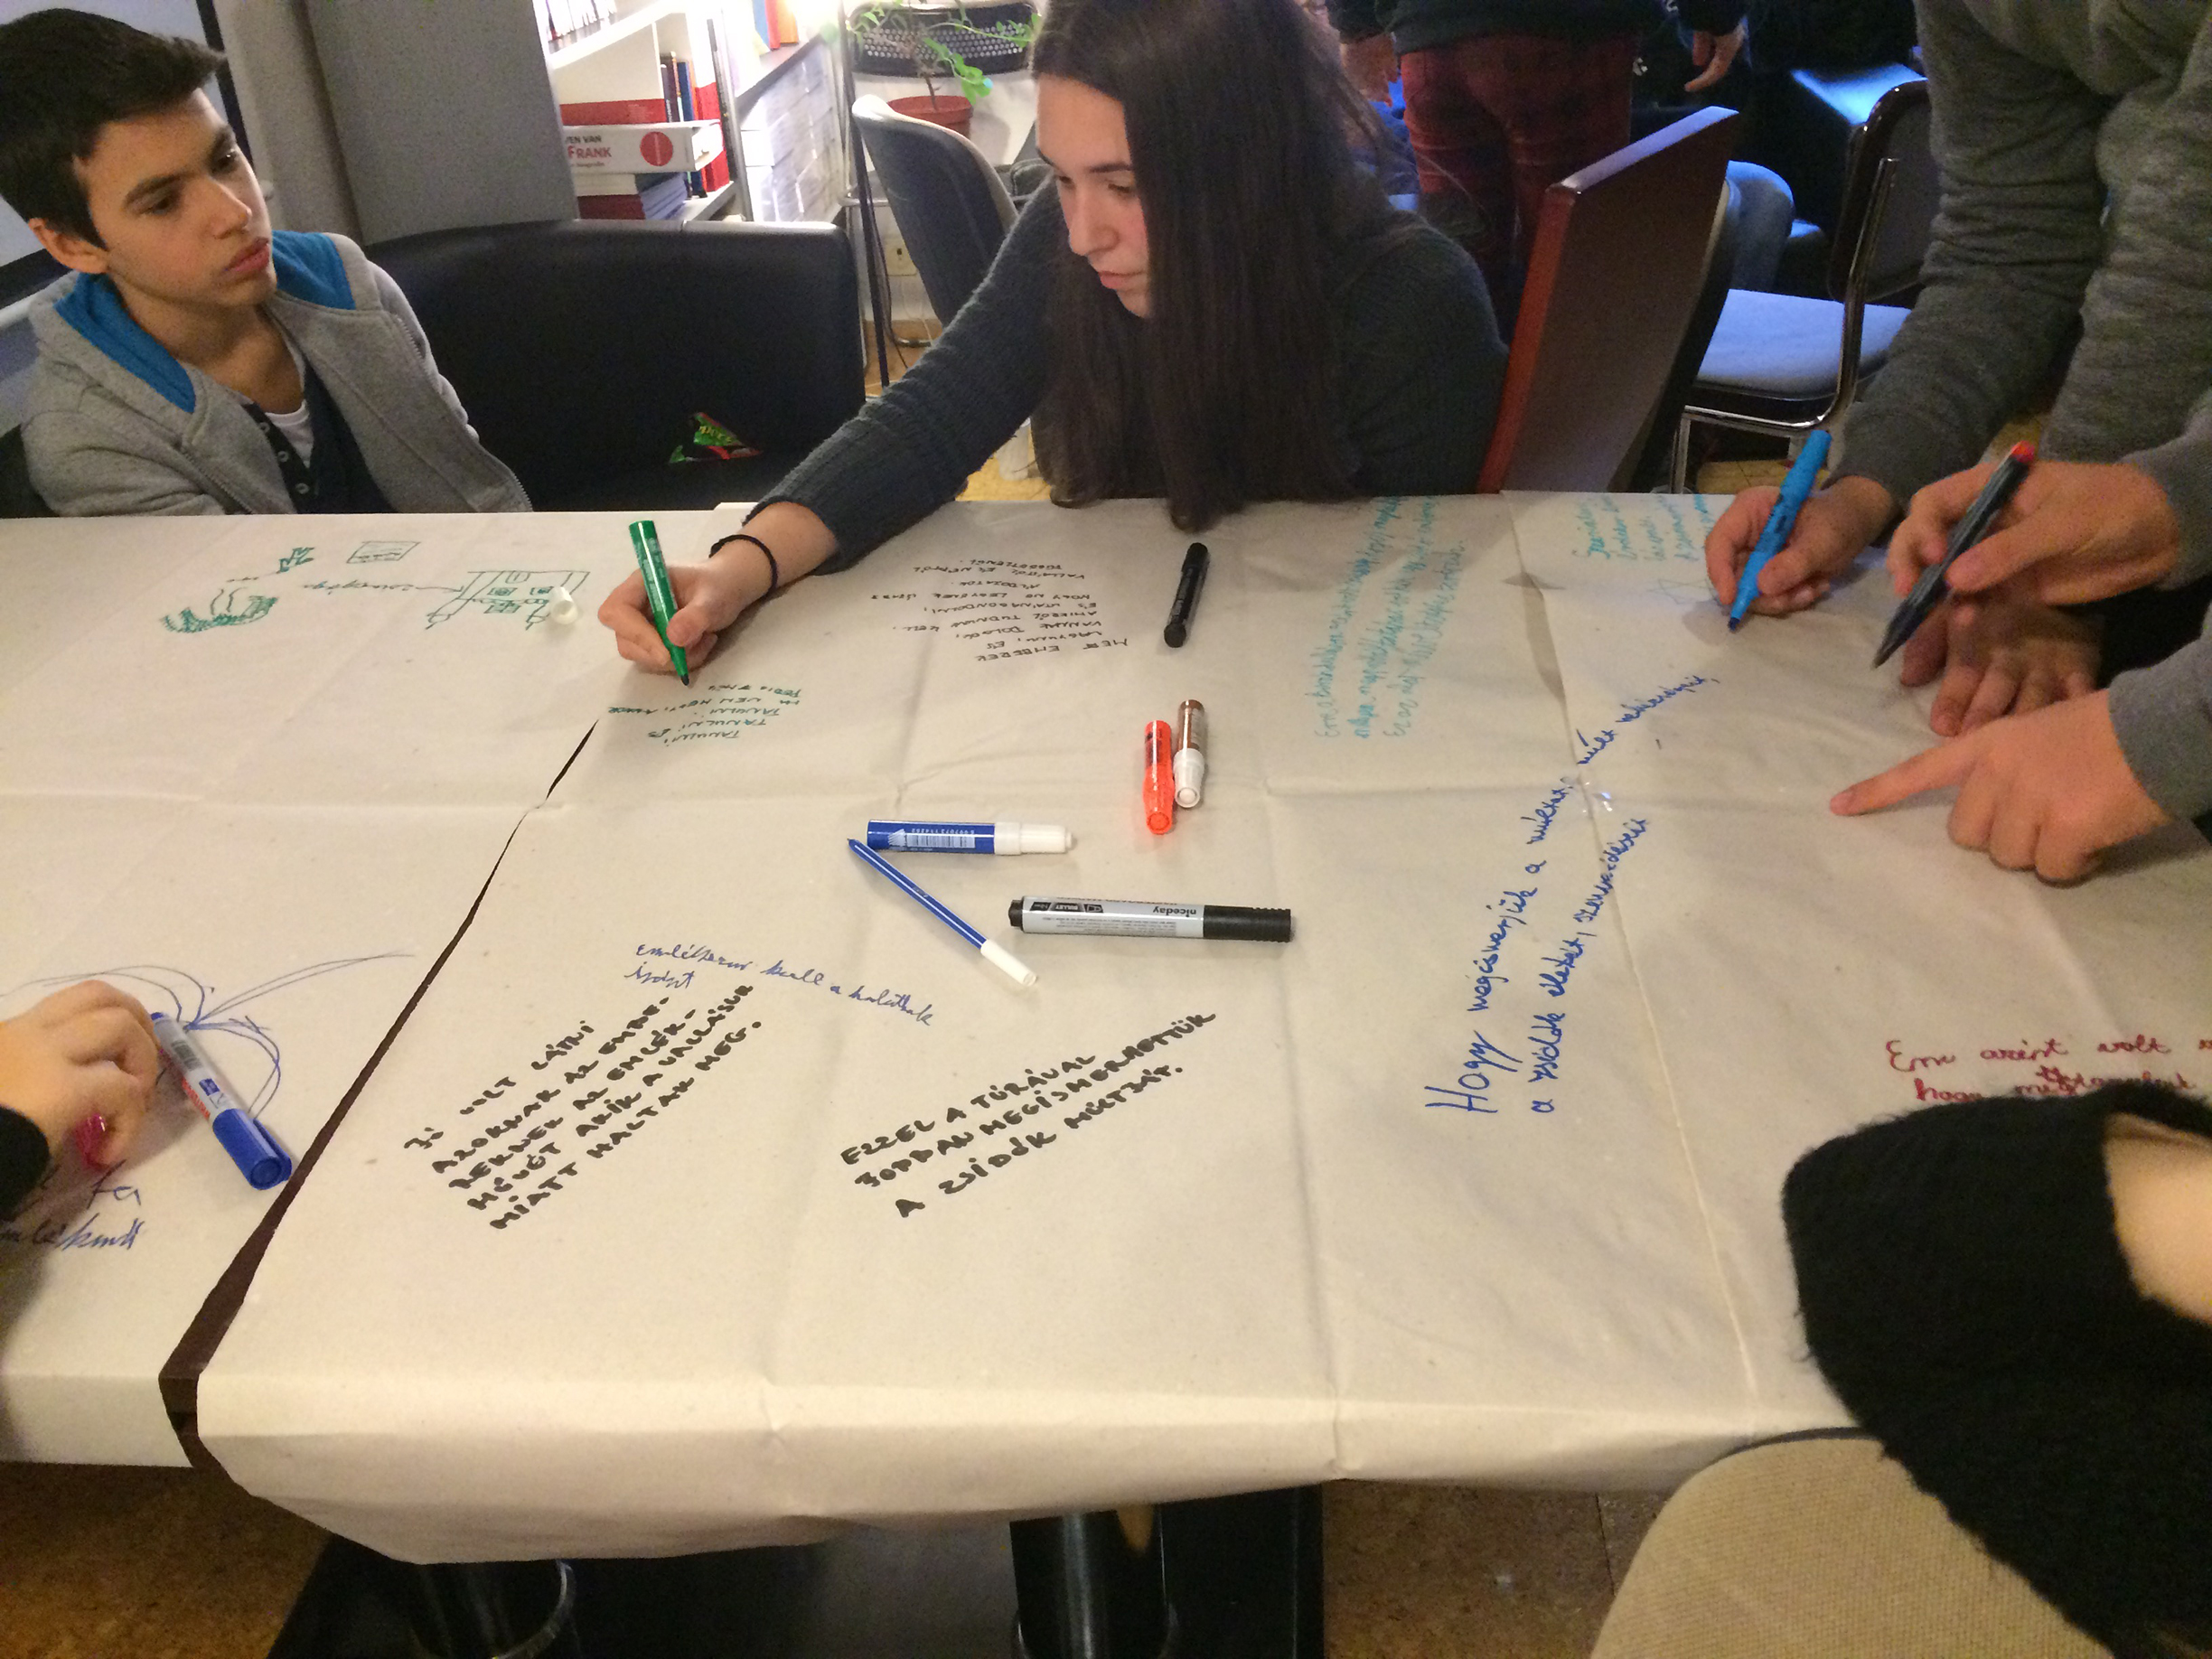 The students reflect on the Budapest IWalk